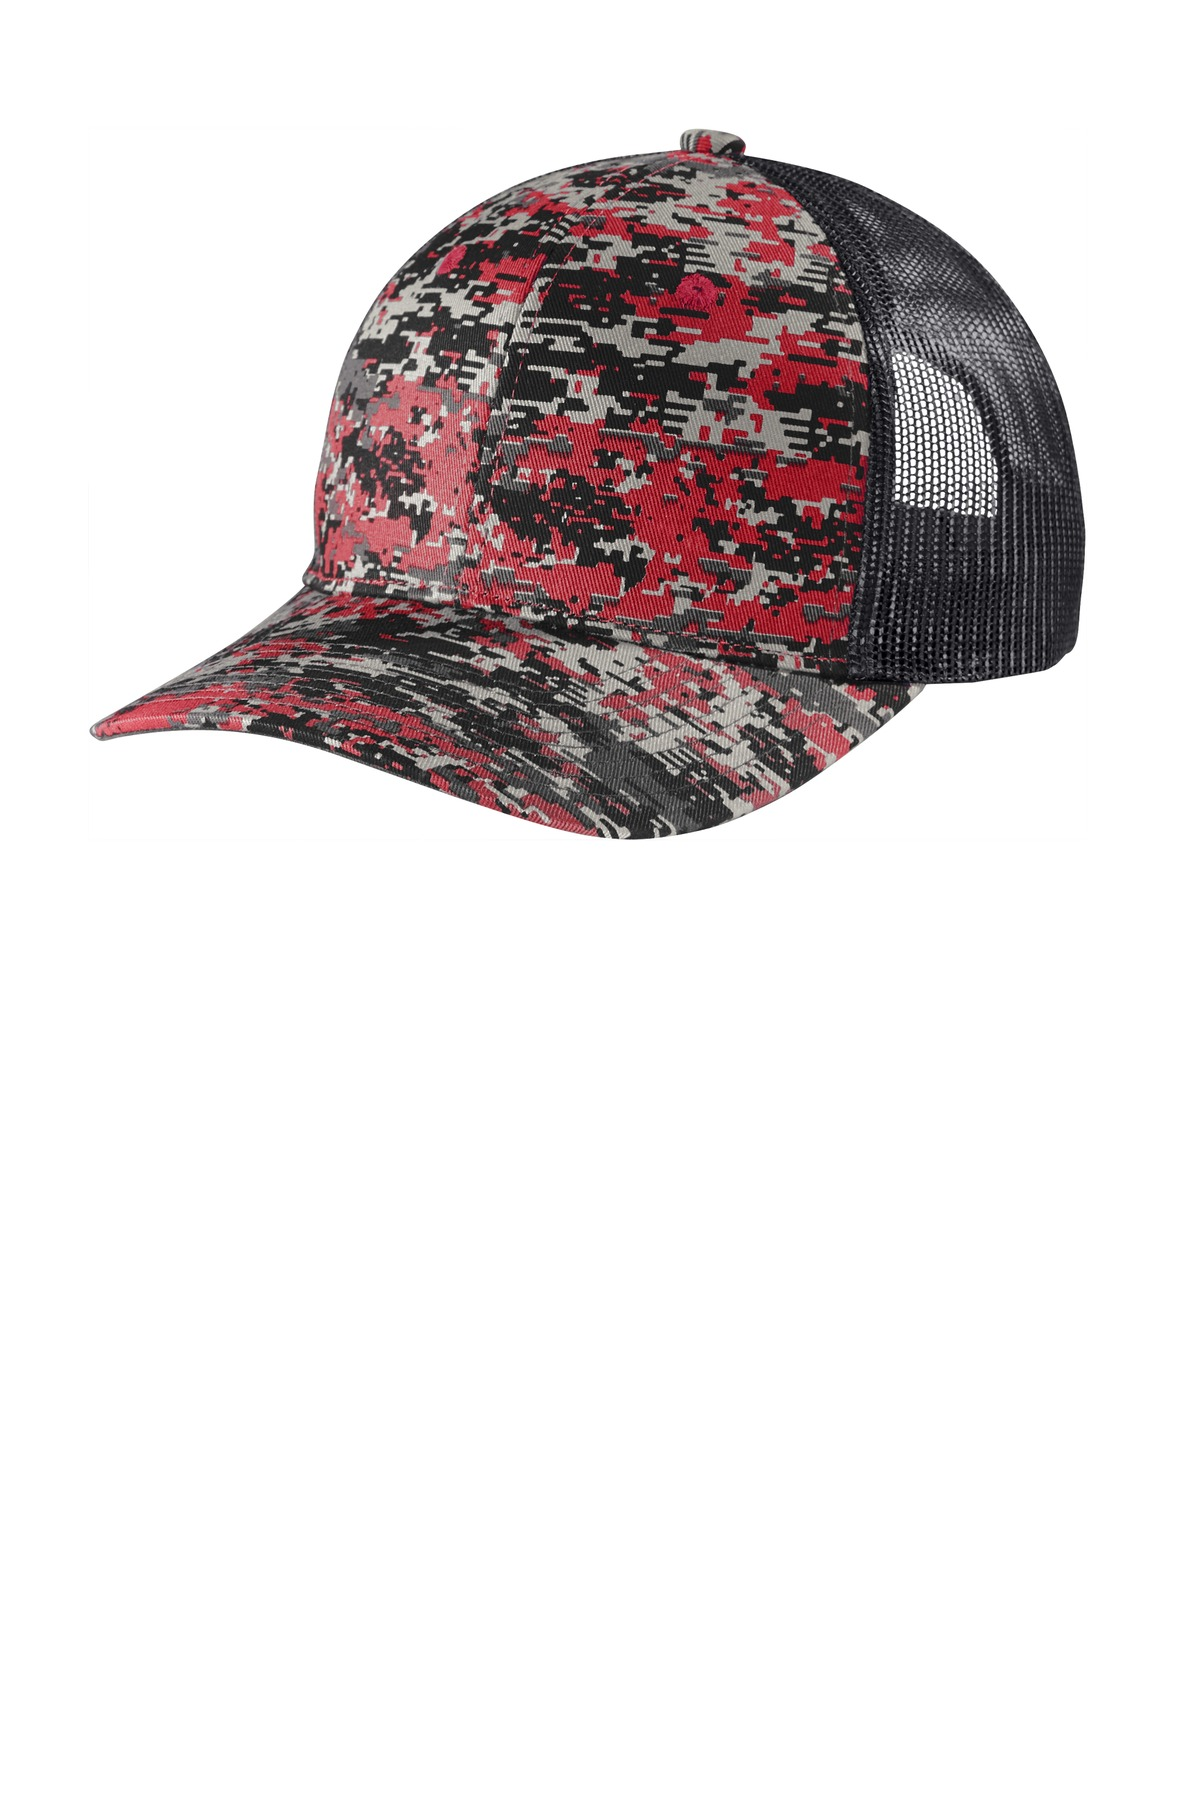 Port Authority  ®  Digi Camo Snapback Trucker Cap C114 - Flame Red Digi/ Grey Steel